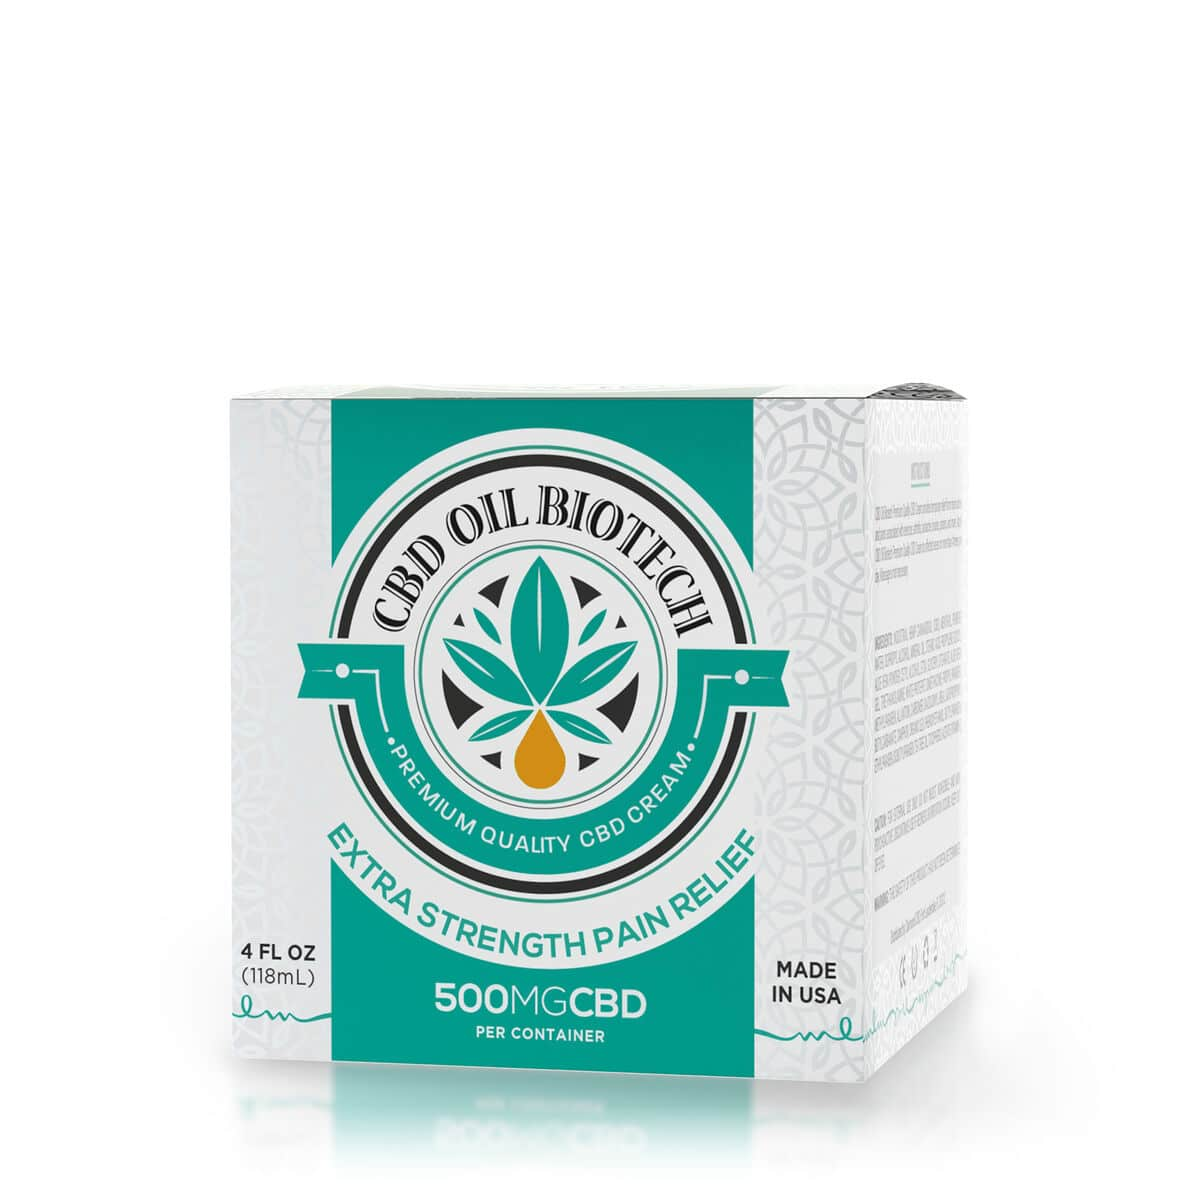 cbd-oil-biotech-cbd-cream-4oz-500mg-of-cbd